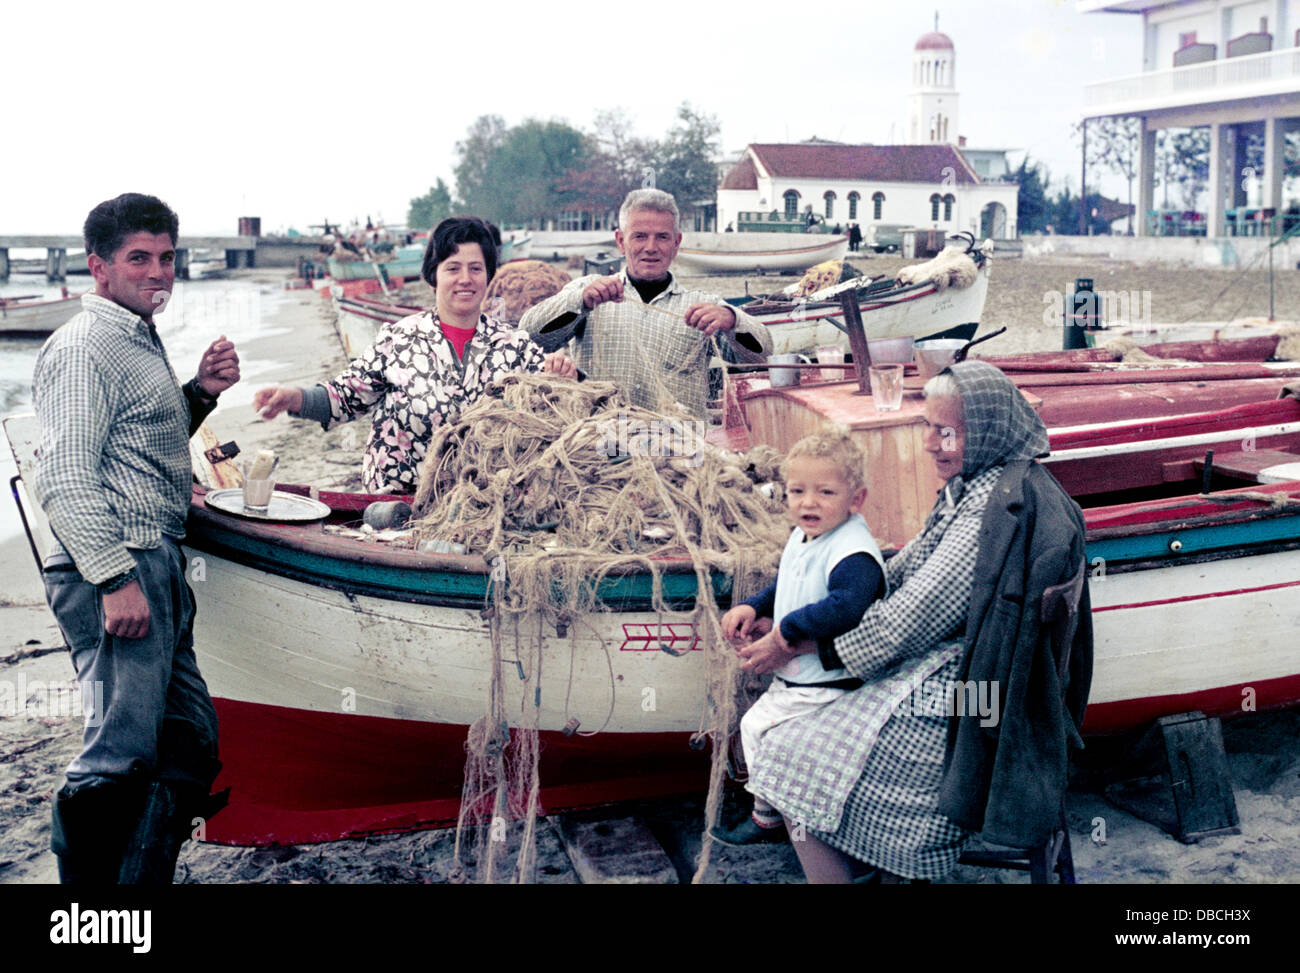 fishermen and their family have coffee on the beach near Barcelona circa 1969 - 1970 - Stock Image